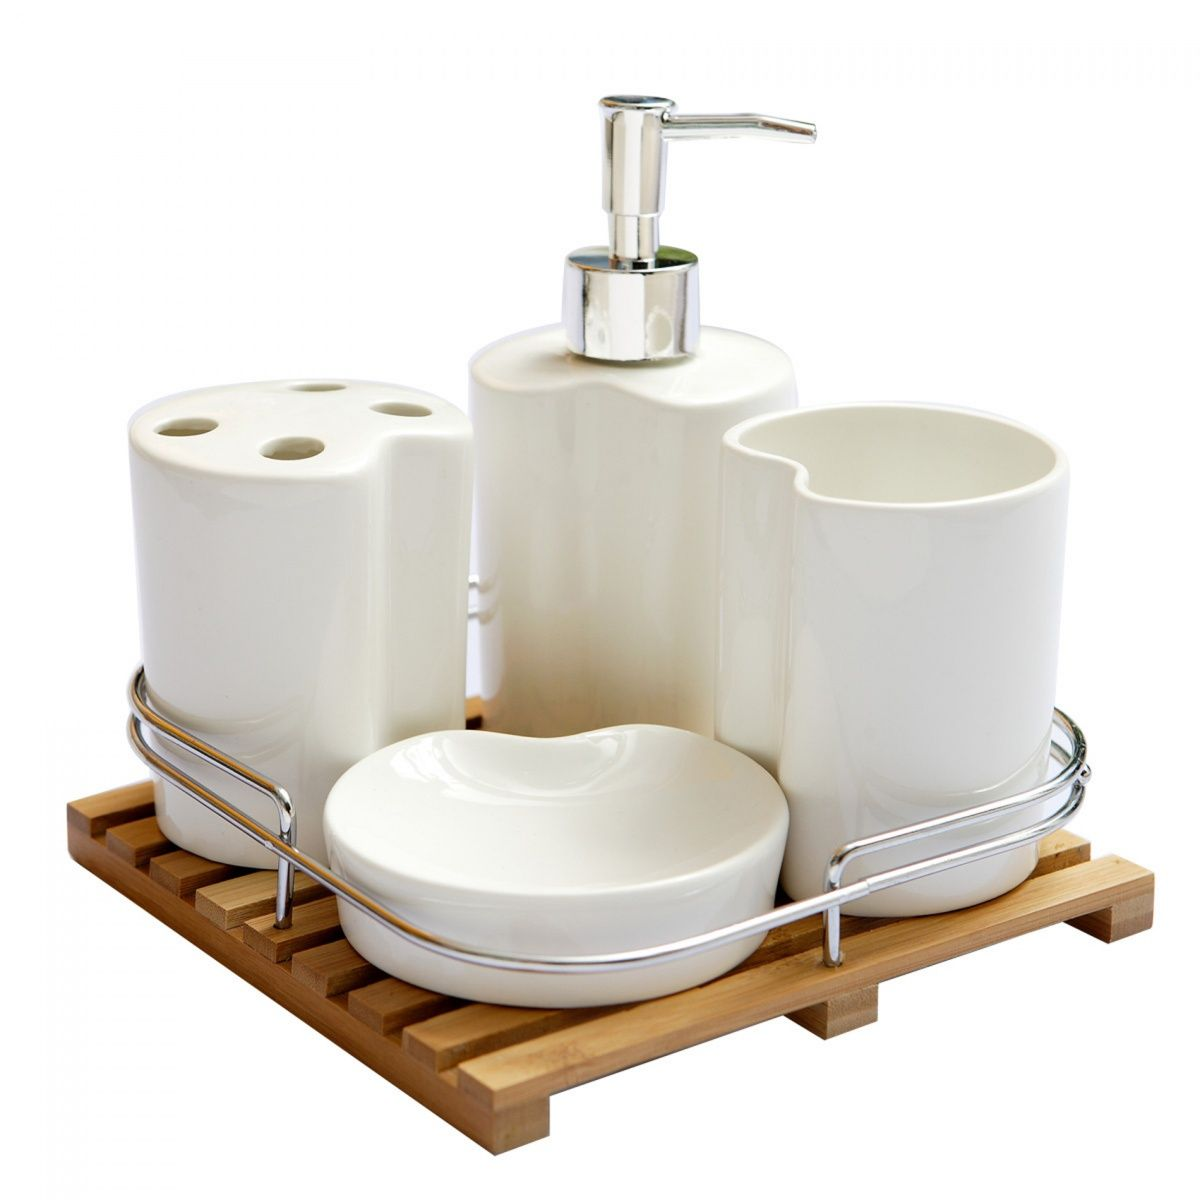 Bamboo Bathroom Accessories Set Bamboo Tray Accessories White